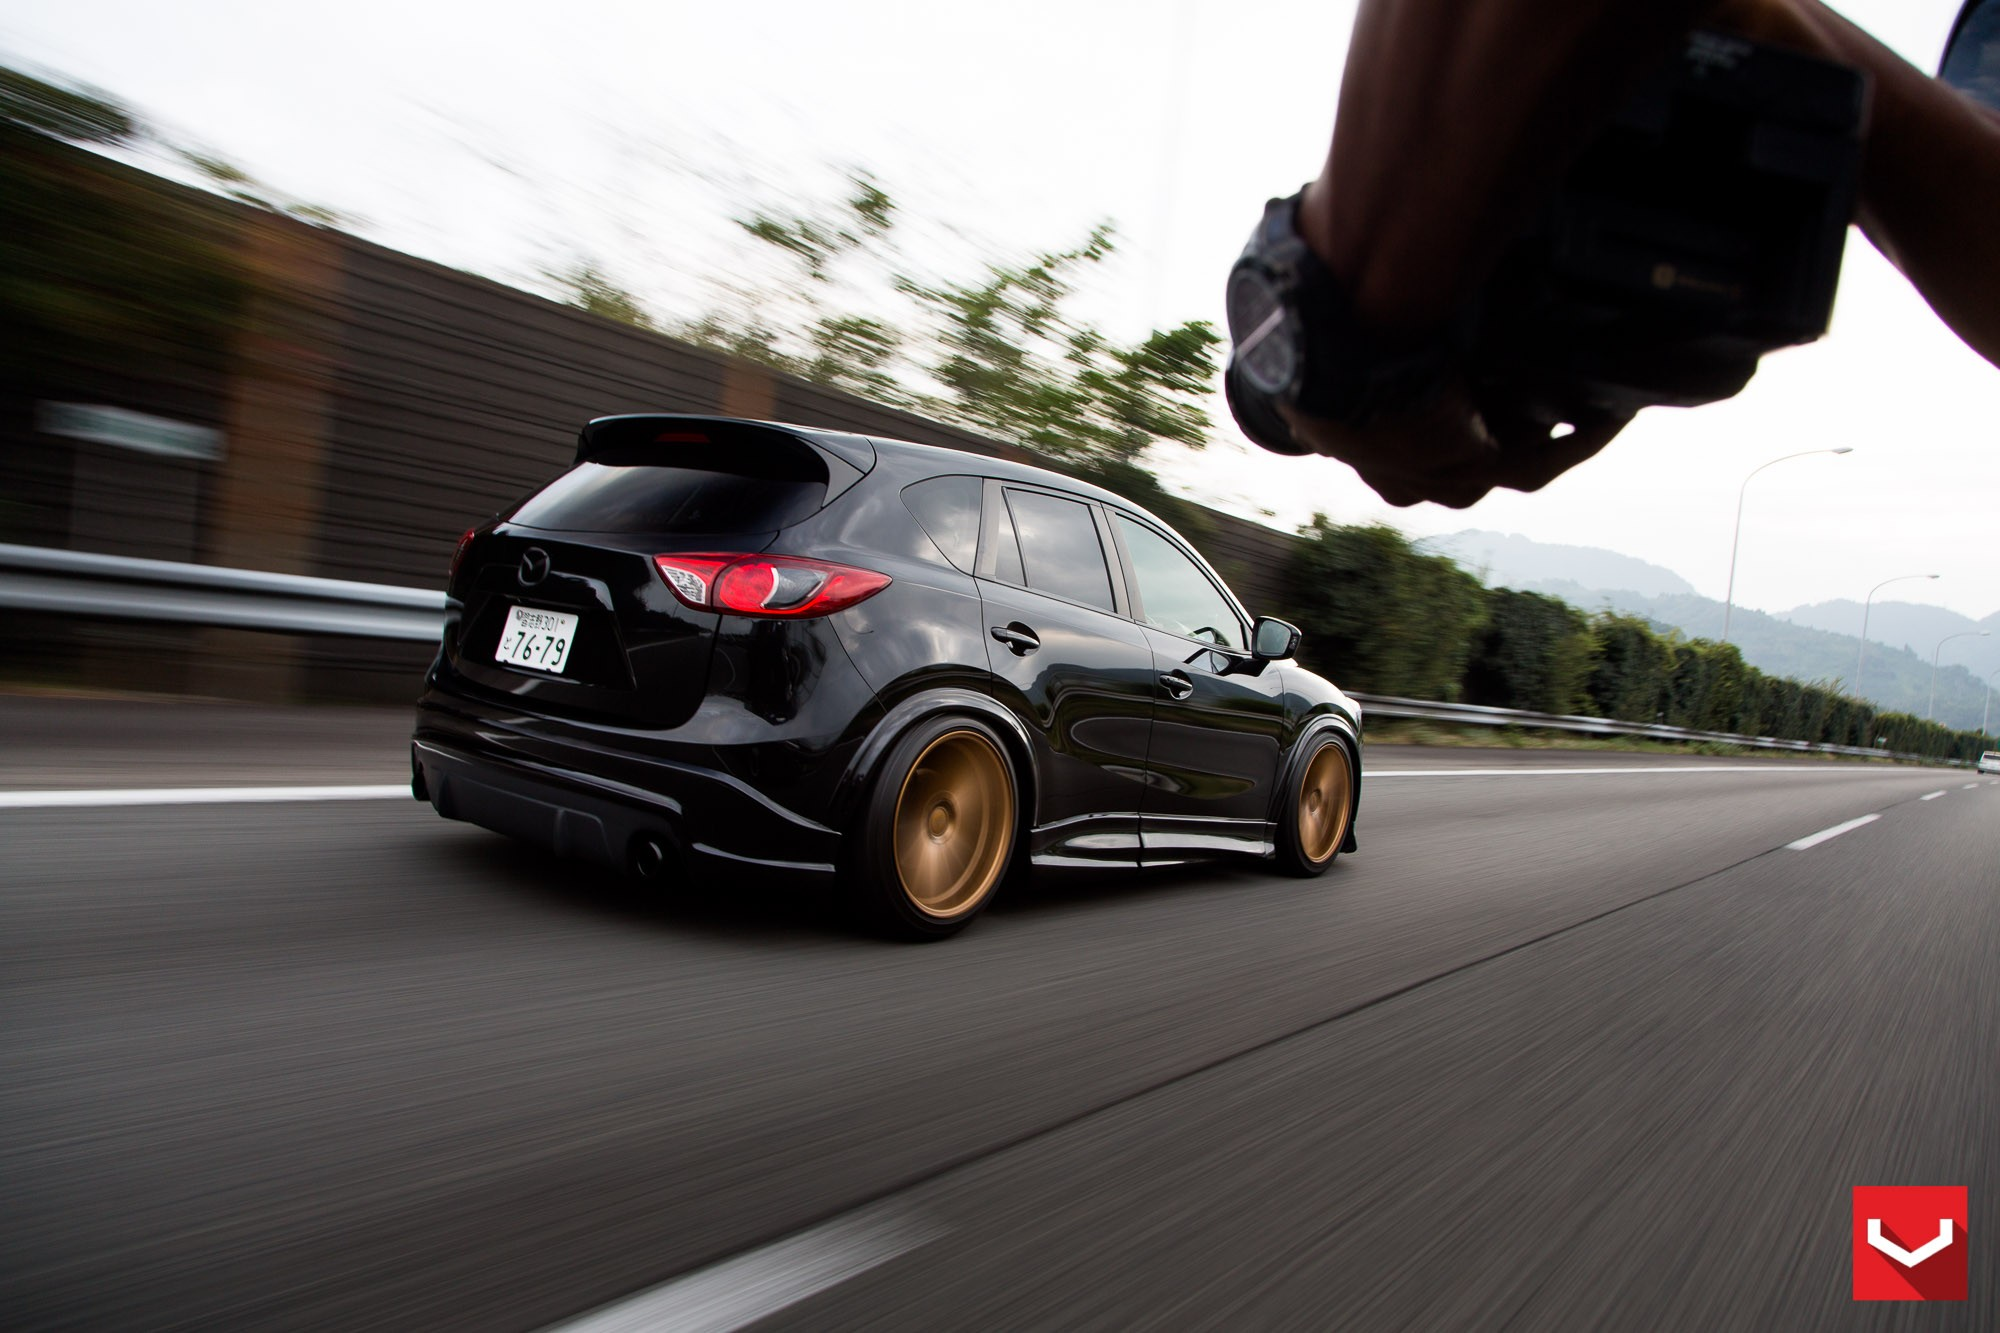 Mazda CX-5 Tuned with Vossen Wheels and Air Suspension - autoevolution